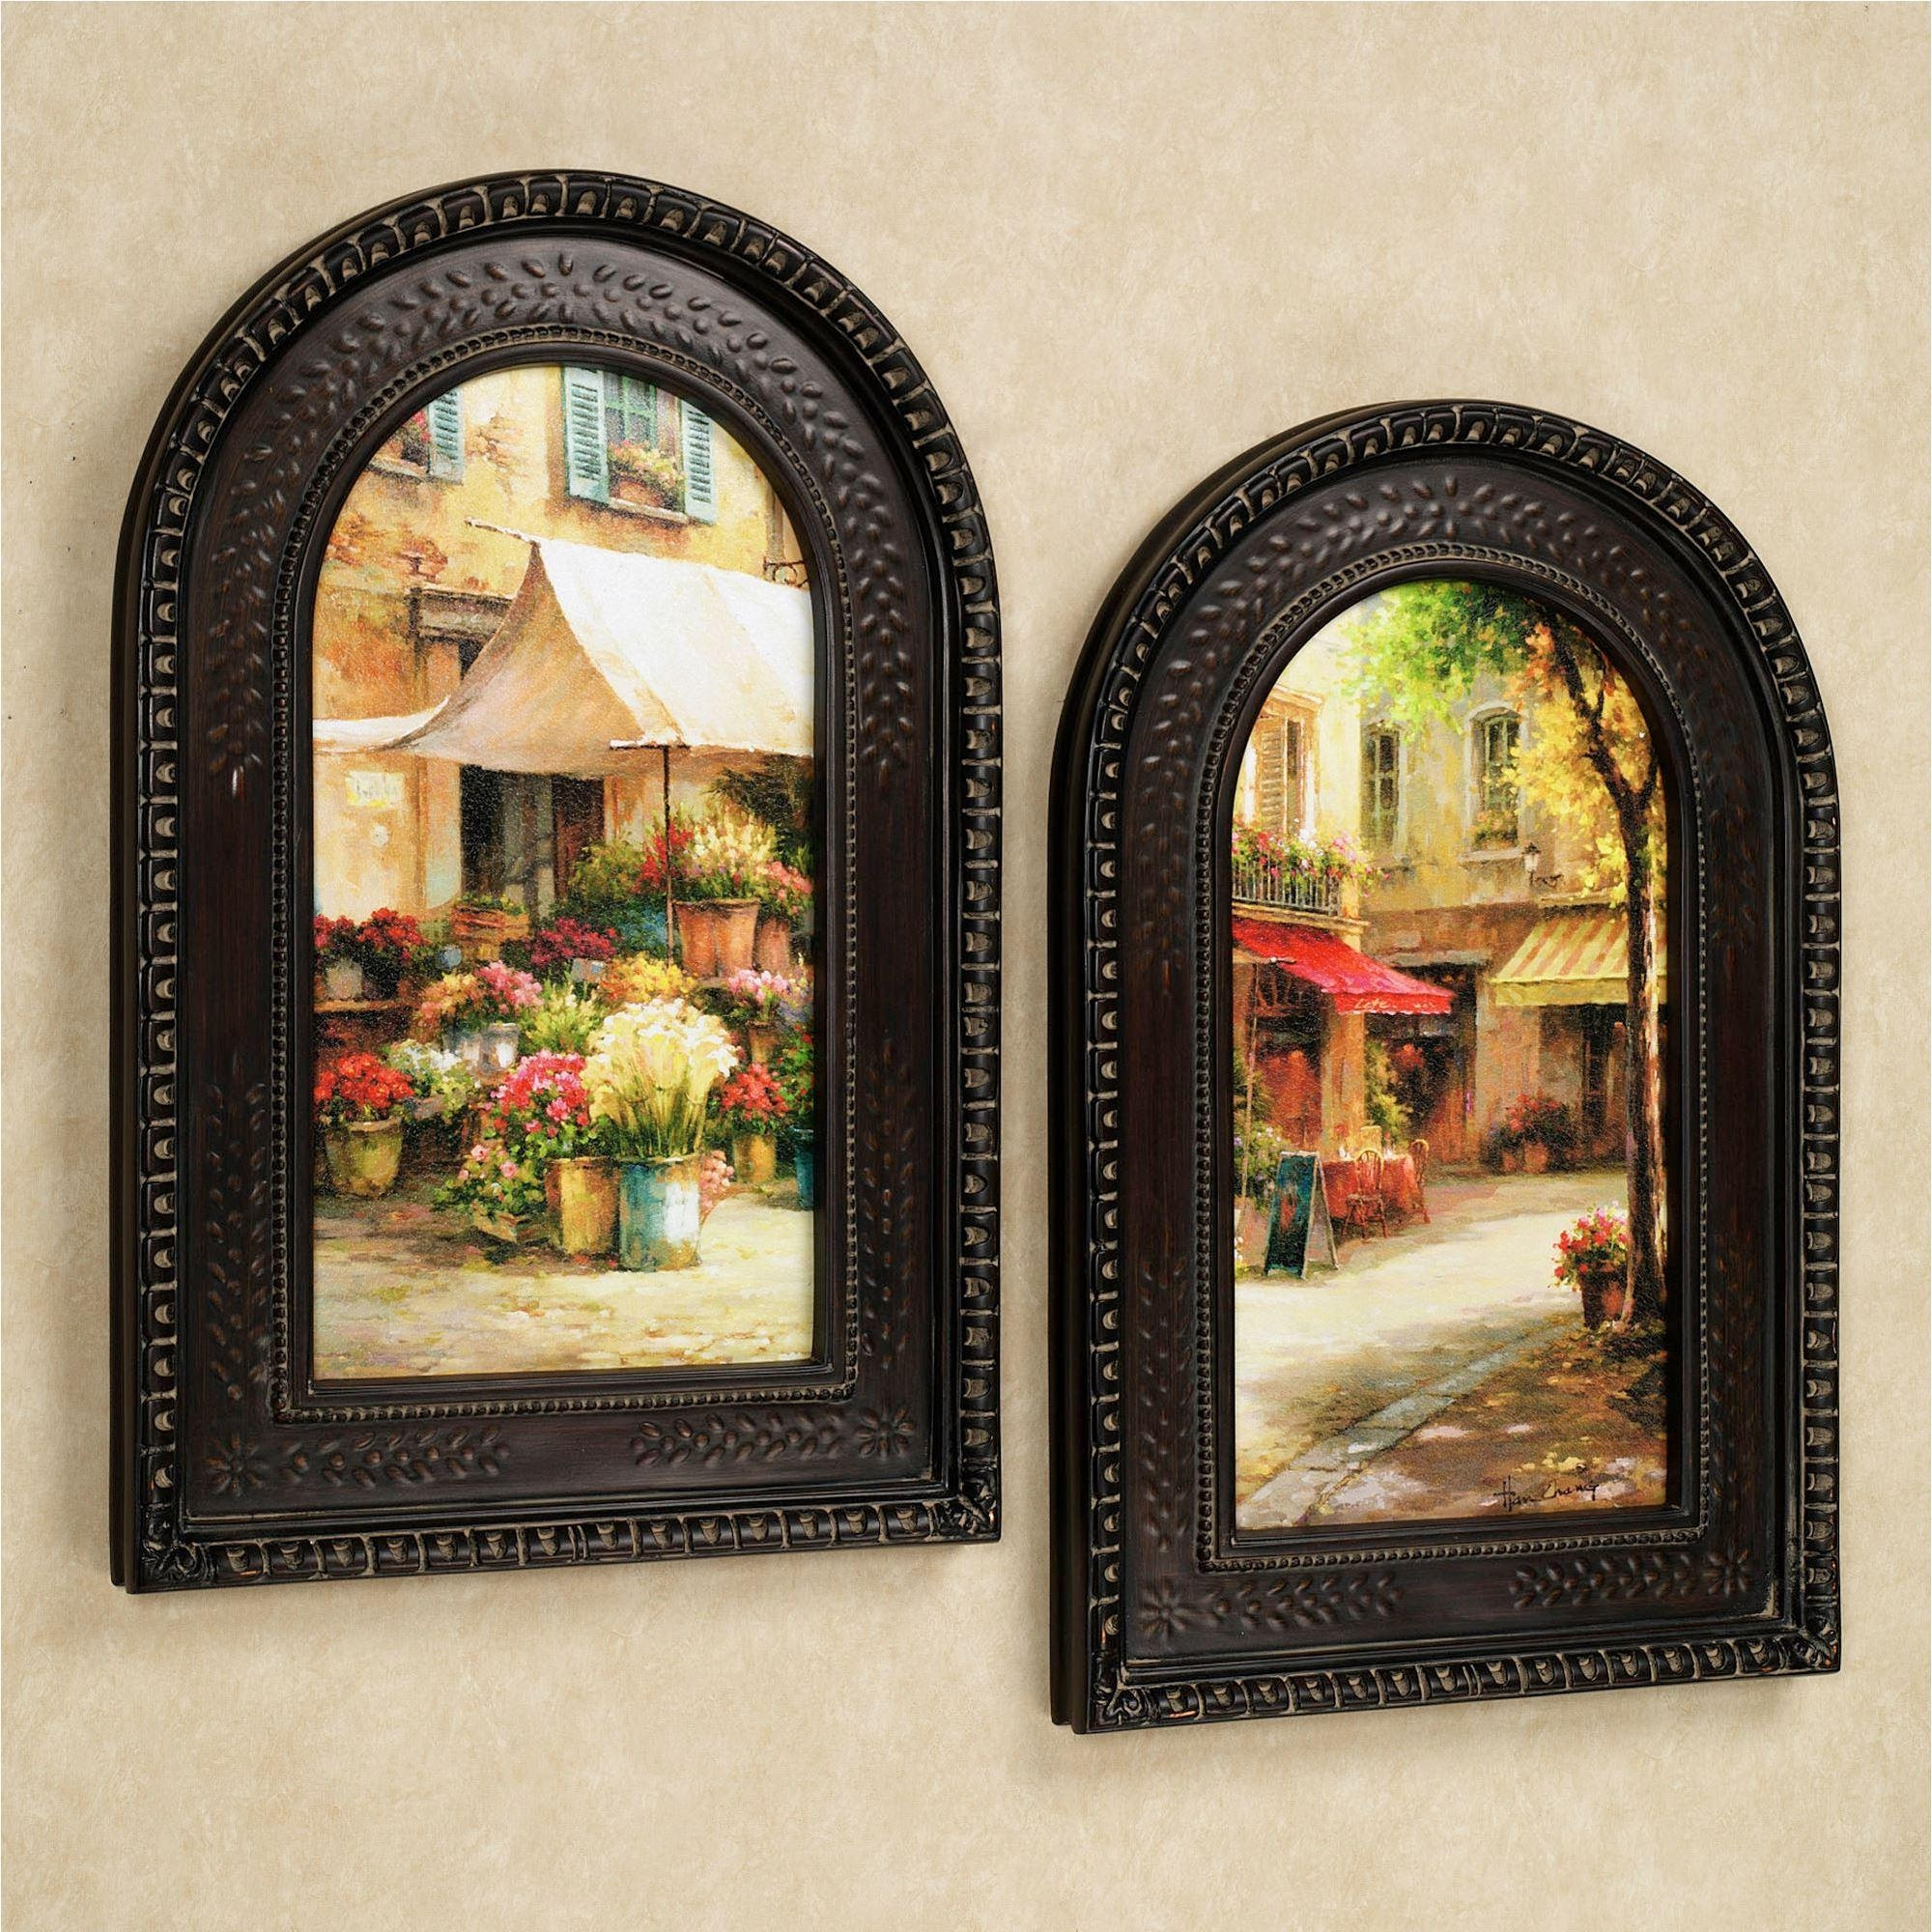 The Flower Market Arched Framed Wall Art Set Intended For Italian Overlook Framed Wall Art Sets (Image 17 of 20)